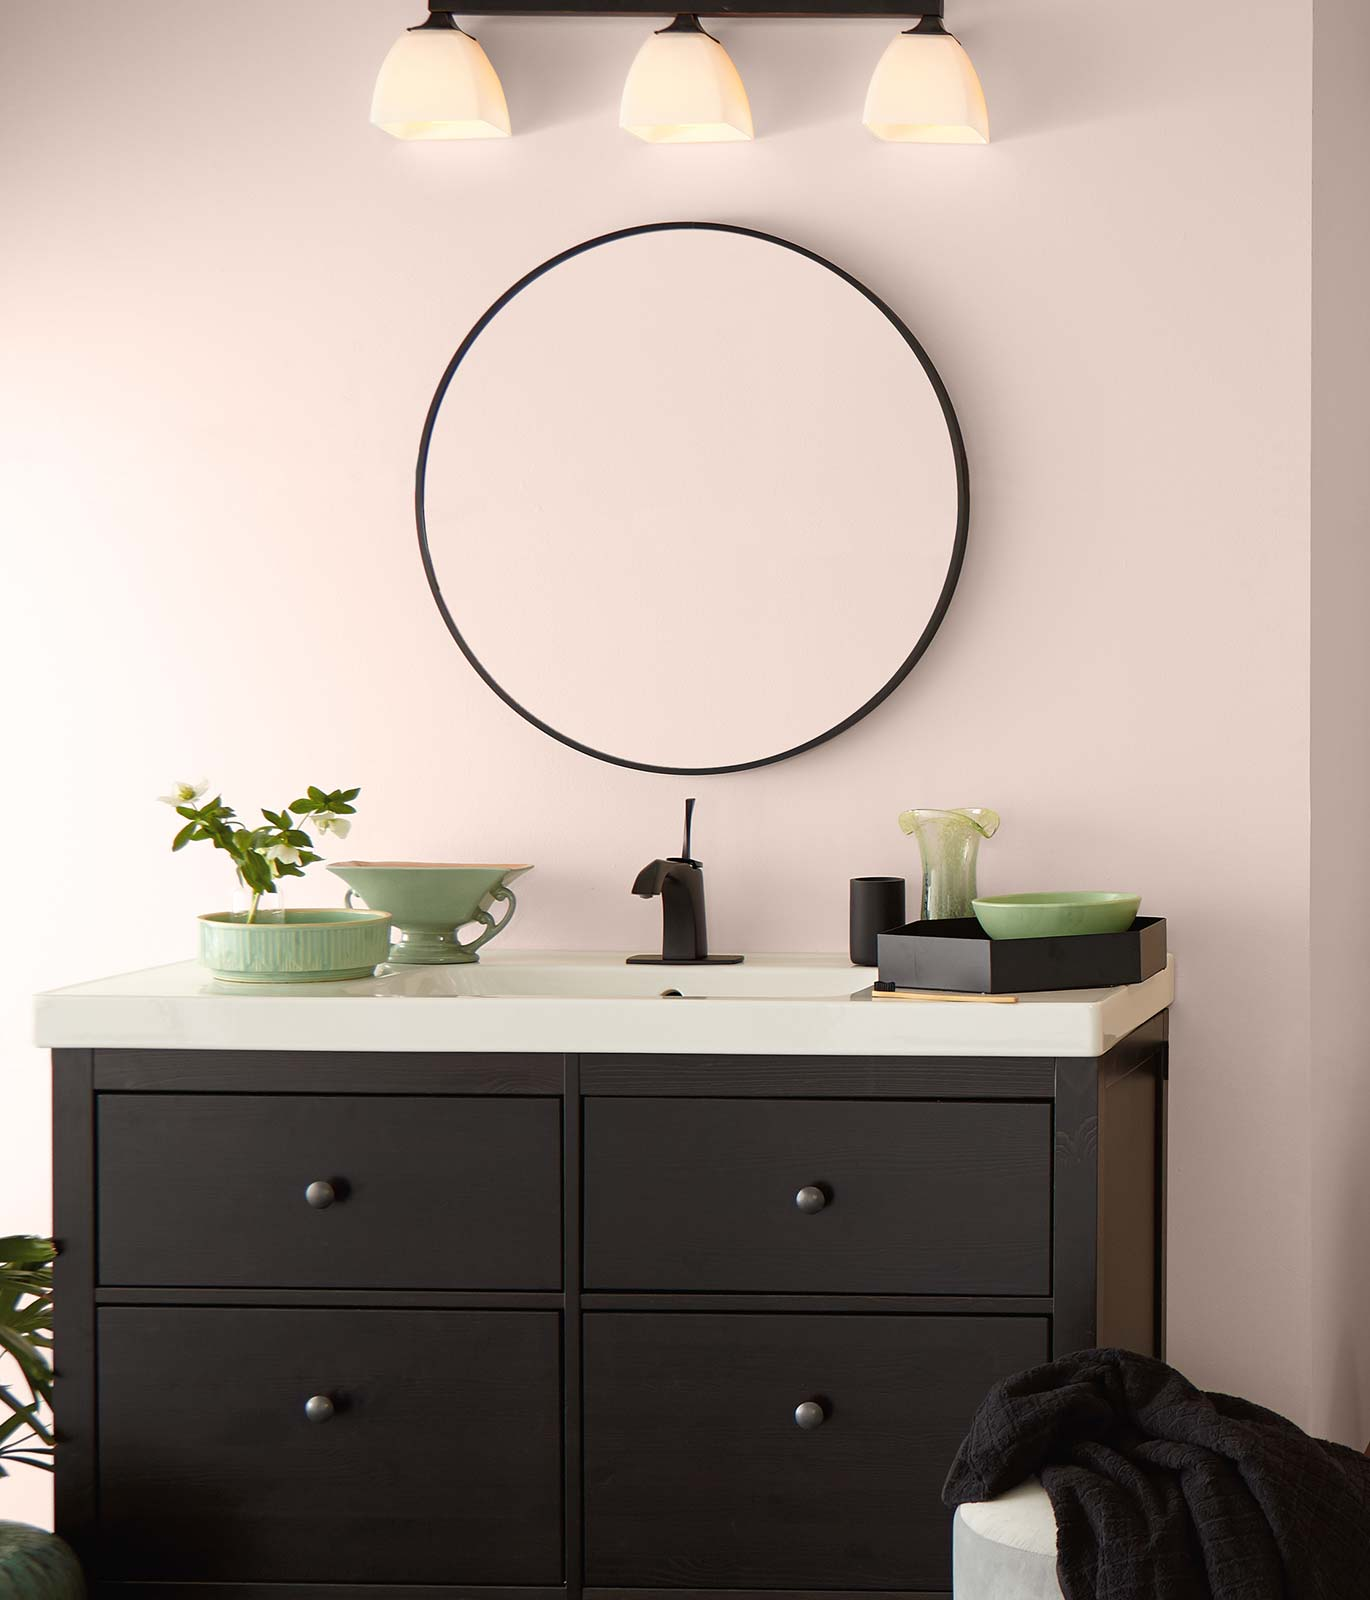 A bathroom with a white sink, brown cabinet and large round mirror. Walls are painted in a subtle pink color and room is decorated with green ceramic décor elements.